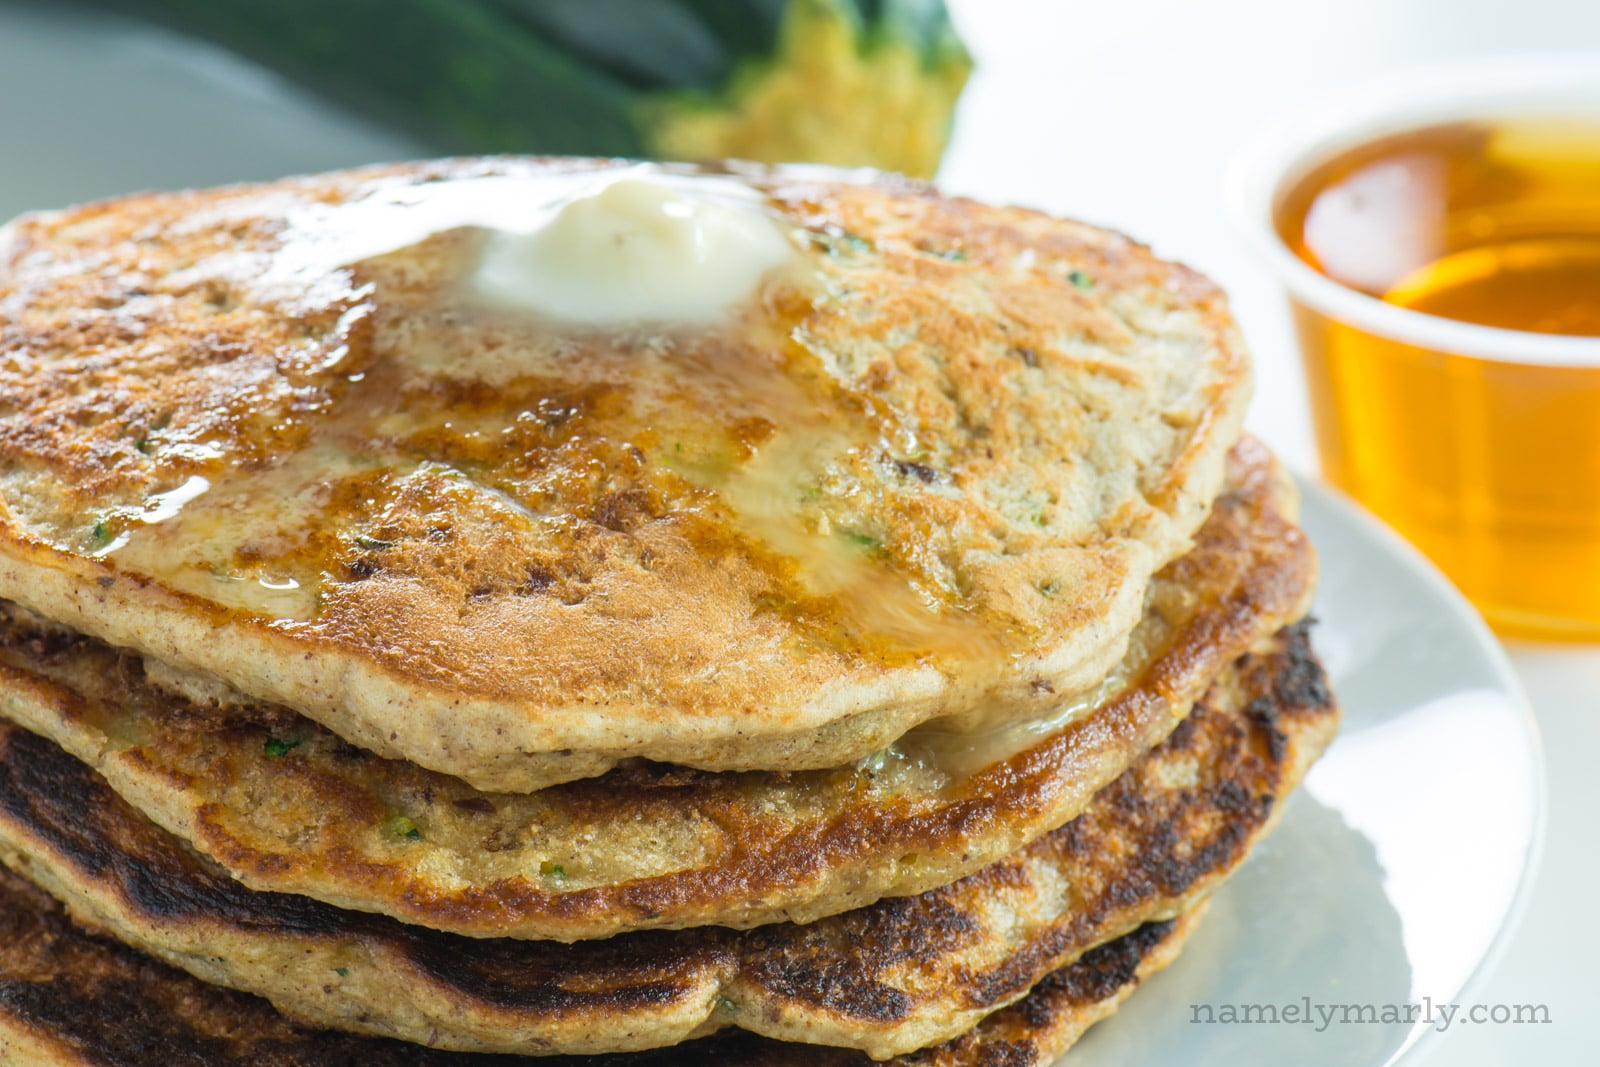 Crispy on the outside, tender on the inside, these Vegan Breakfast Zucchini Pancakes topped with maple syrup will start your day out right, time after time.